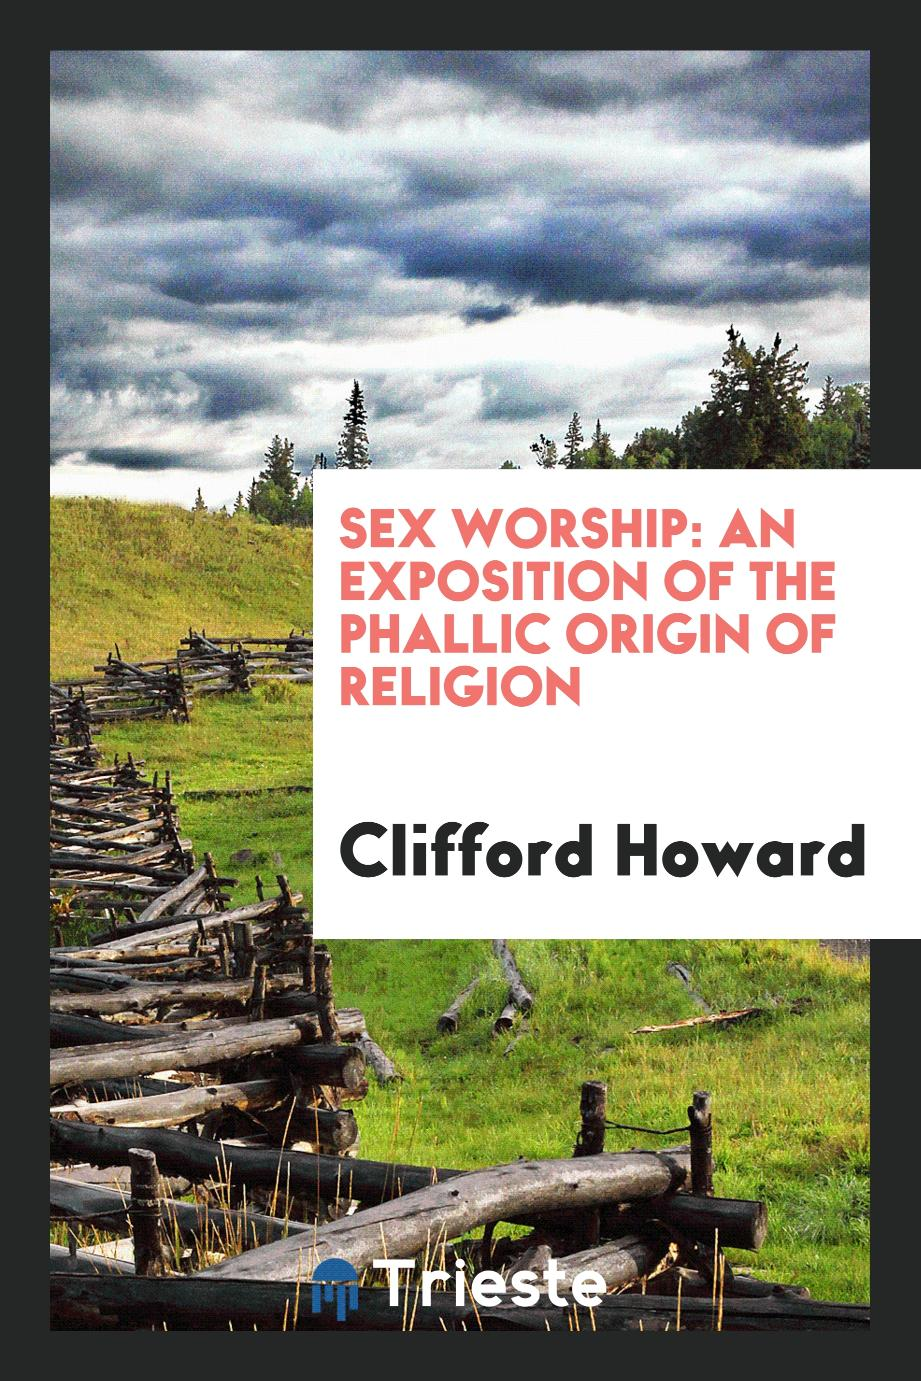 Sex worship: an exposition of the phallic origin of religion